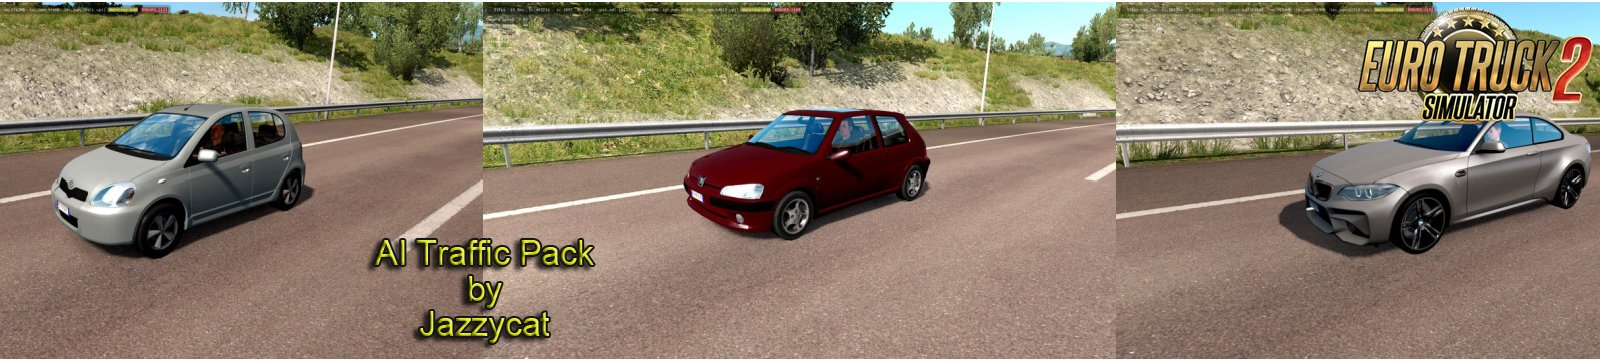 AI Traffic Pack v9.6 by Jazzycat